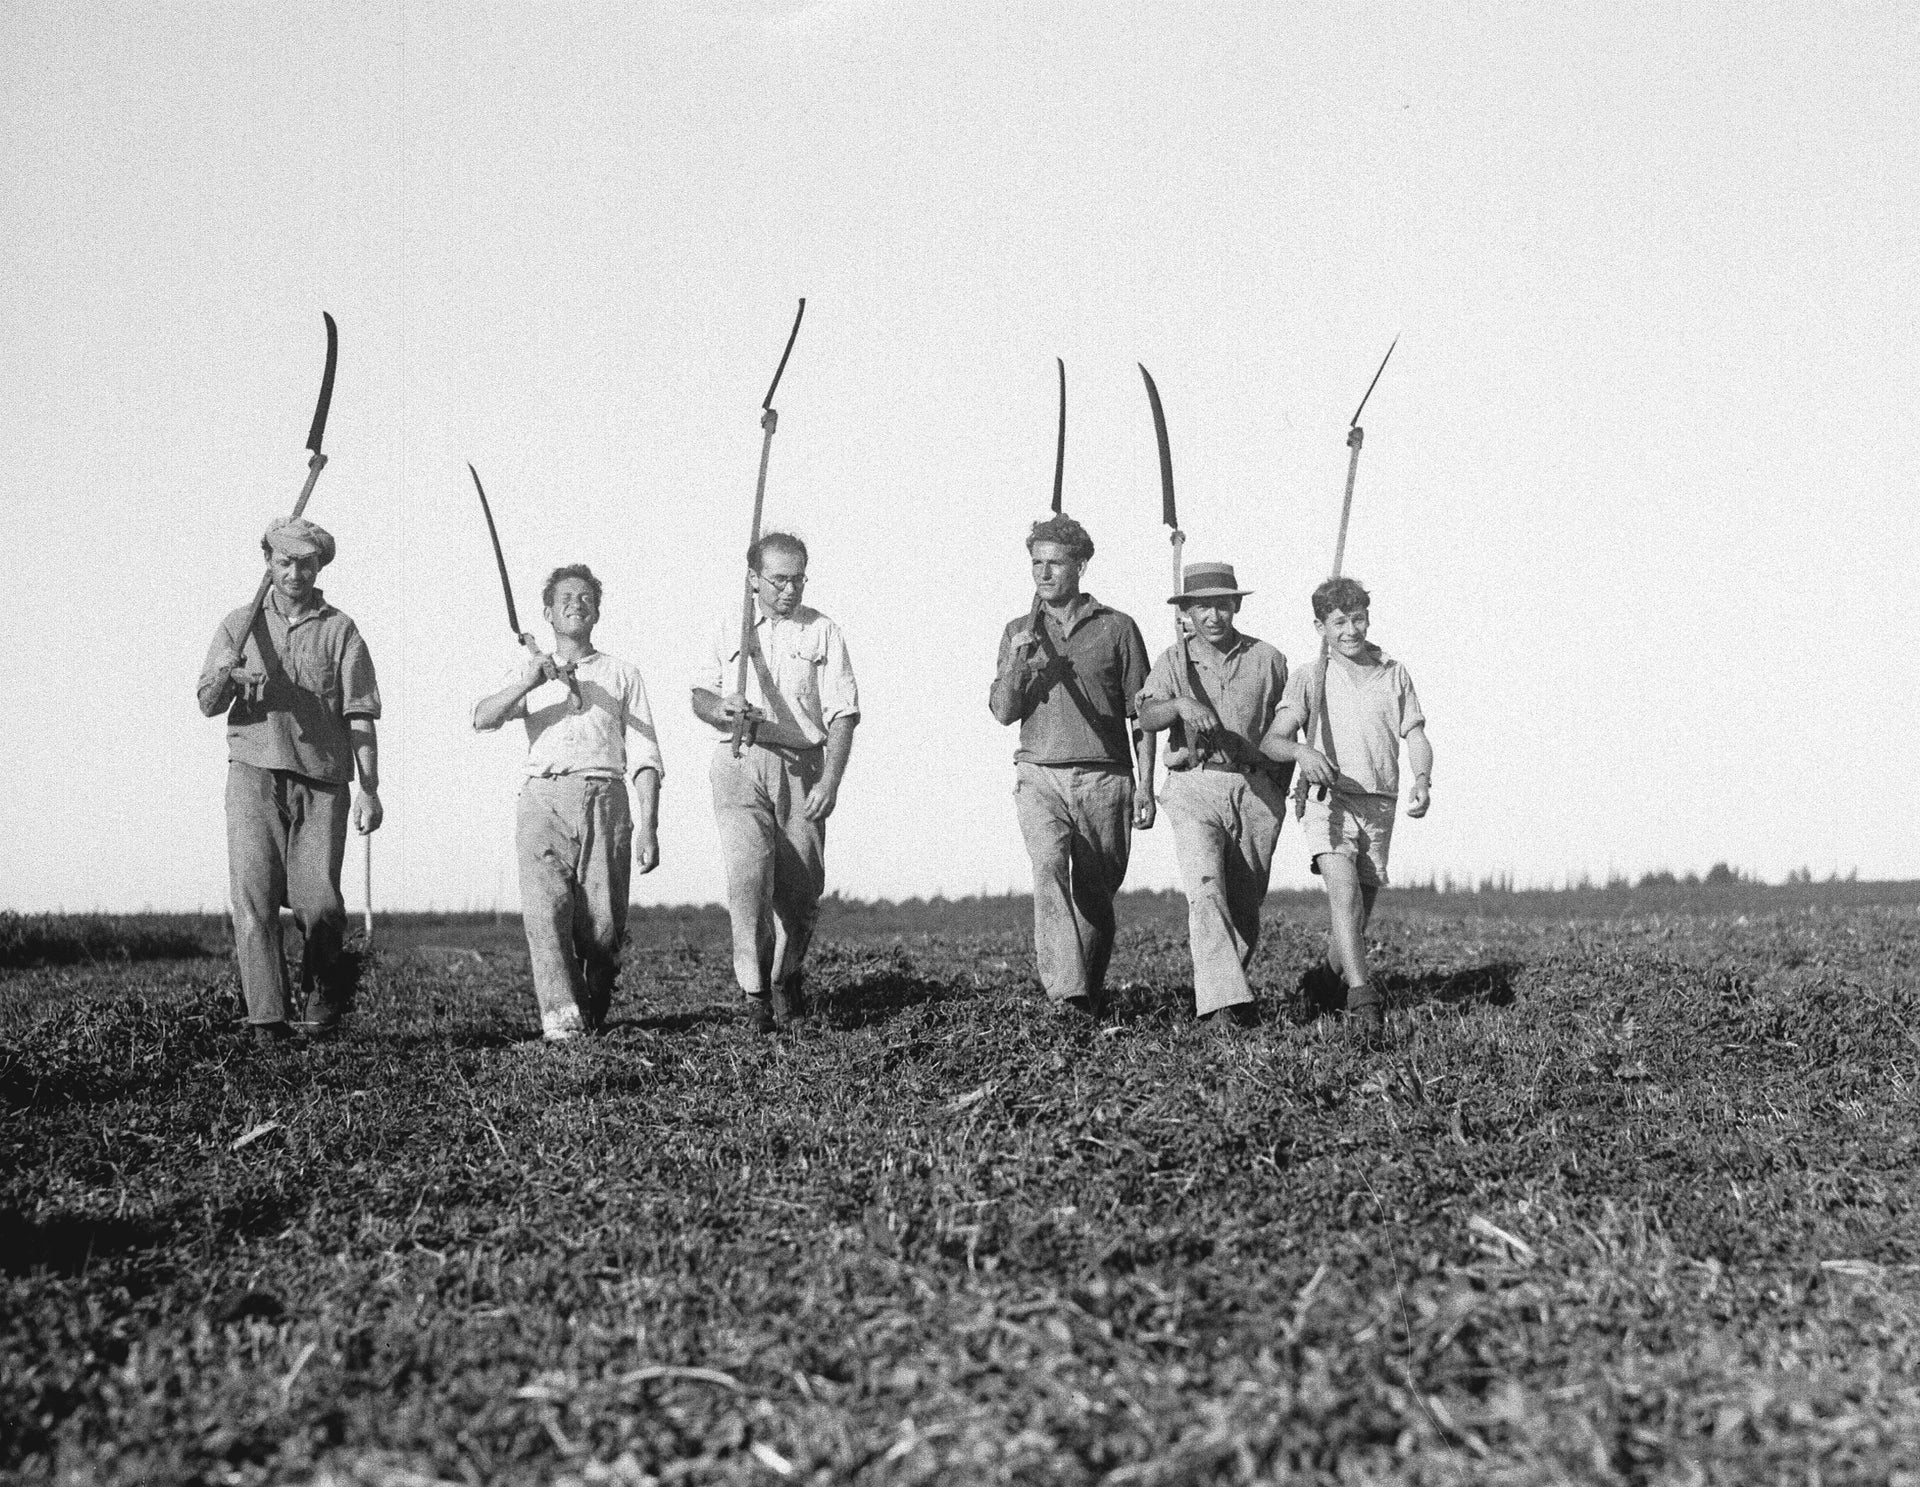 Farmers on their way to cut fodder in the fields of Kibbutz Givat Brener, 1937.